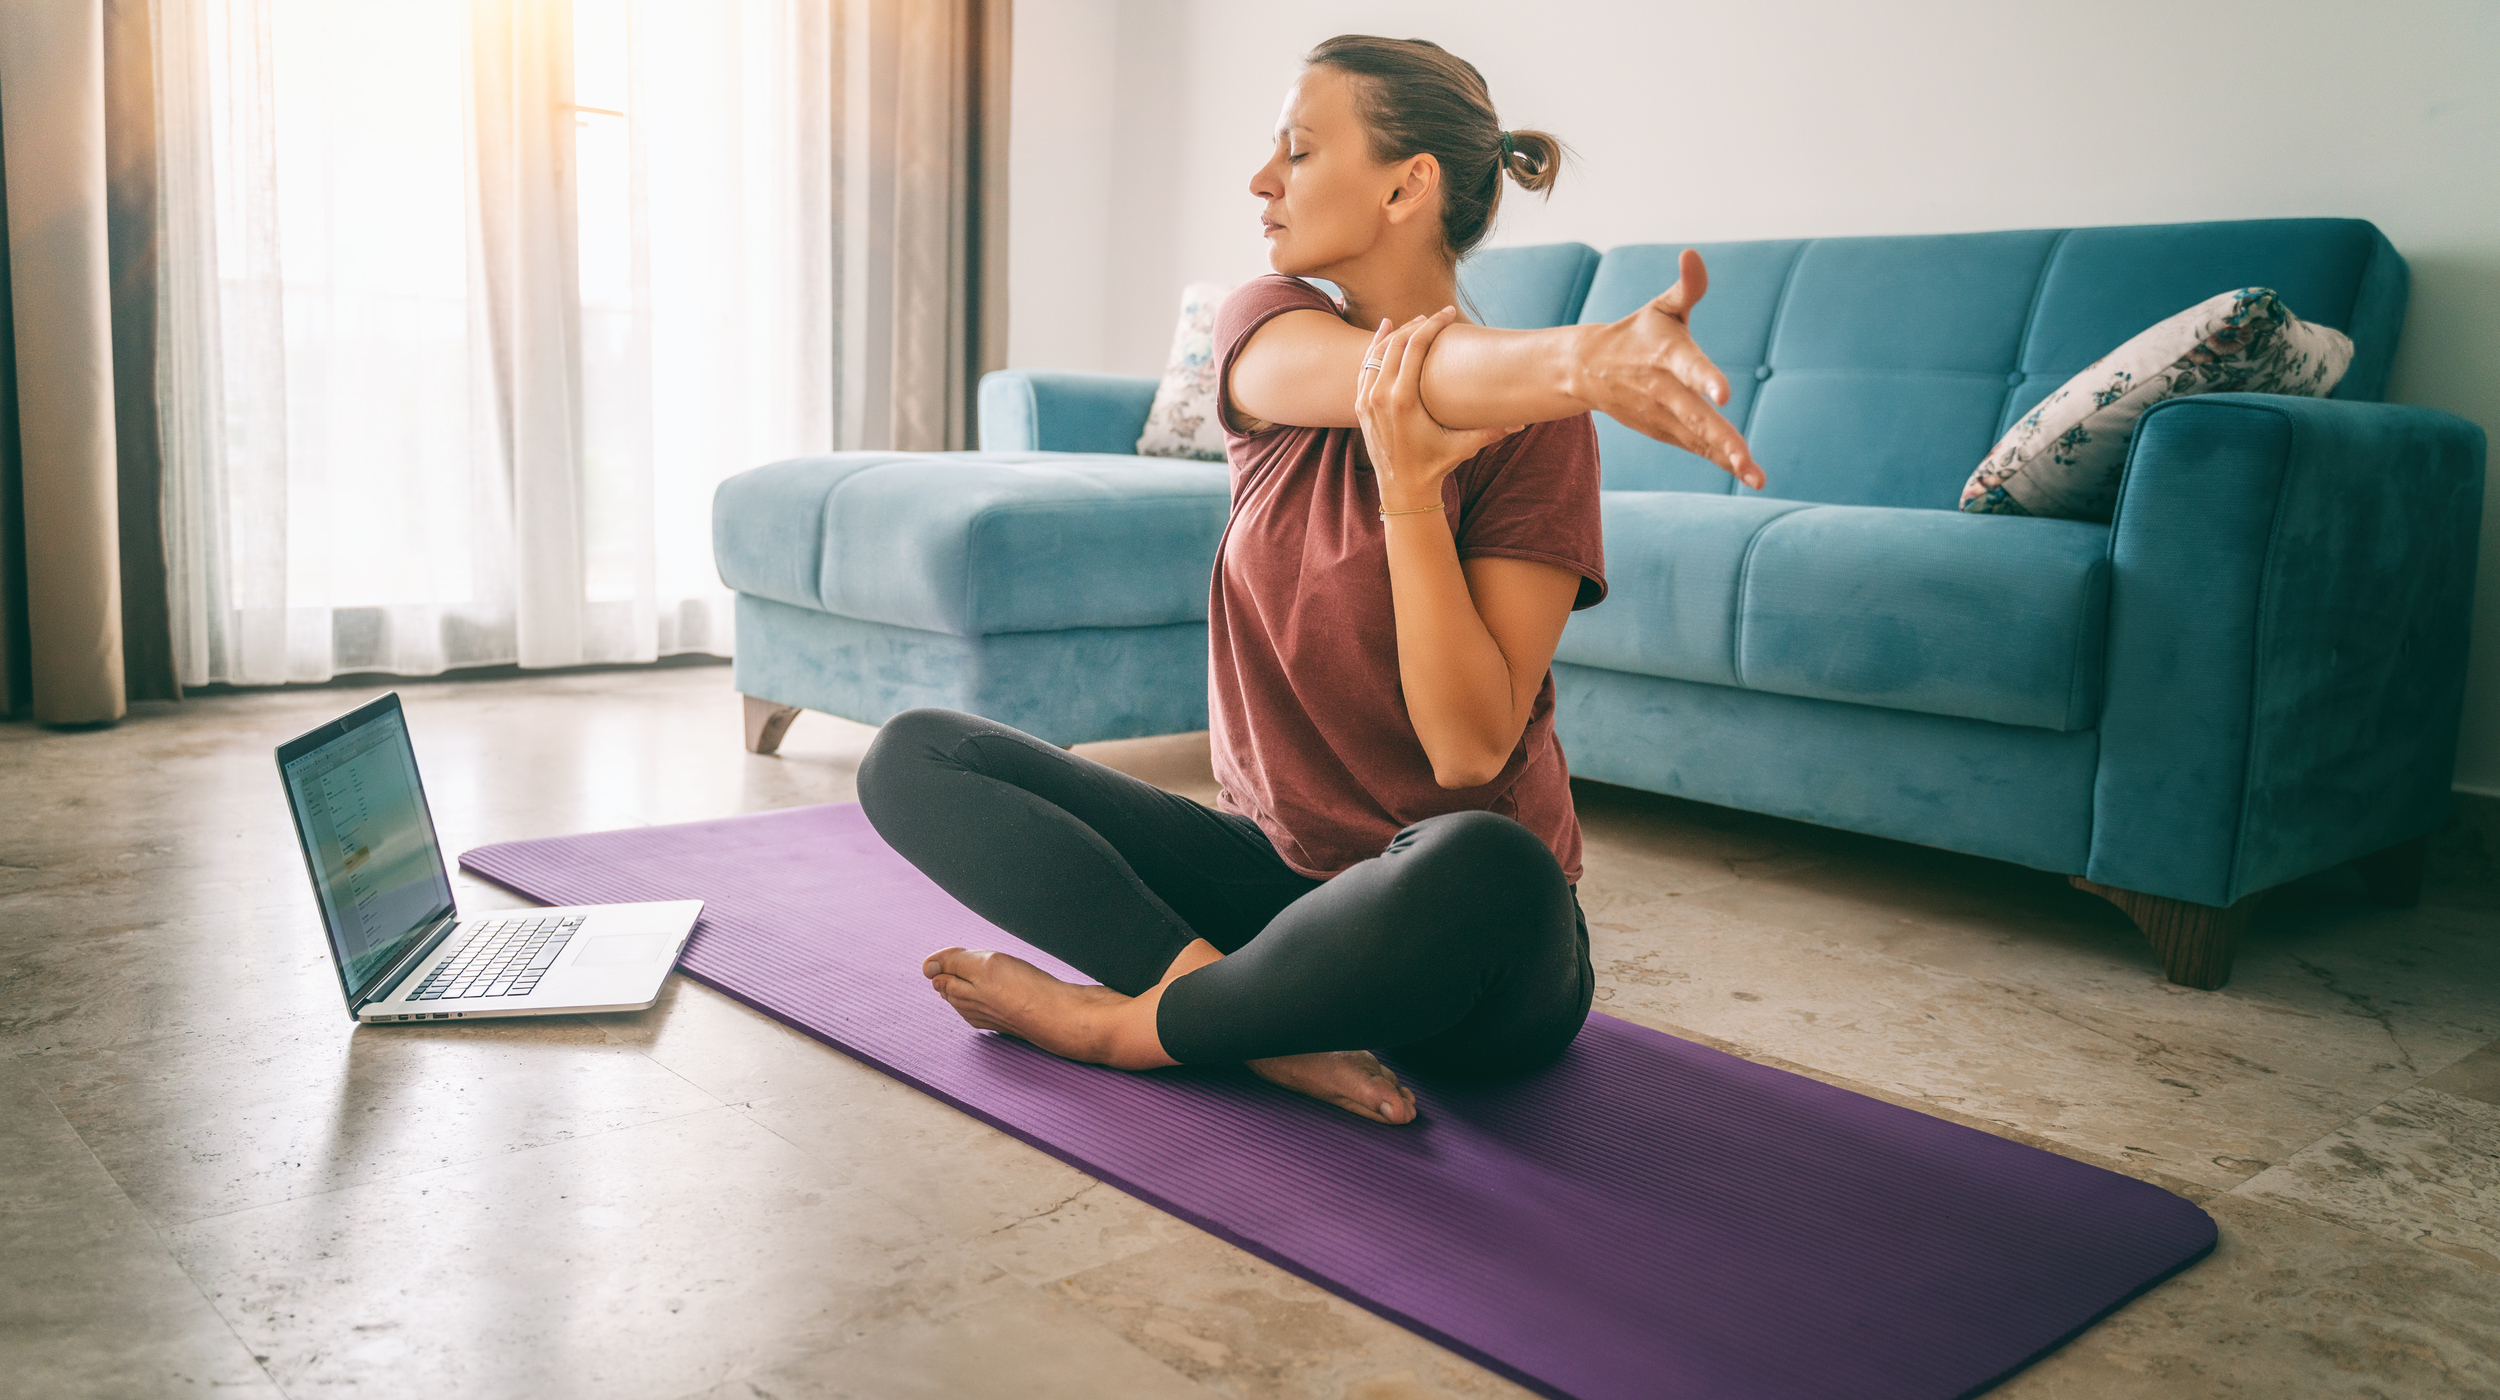 Why Mobility Training can be so Important for Fighting Chronic Pain